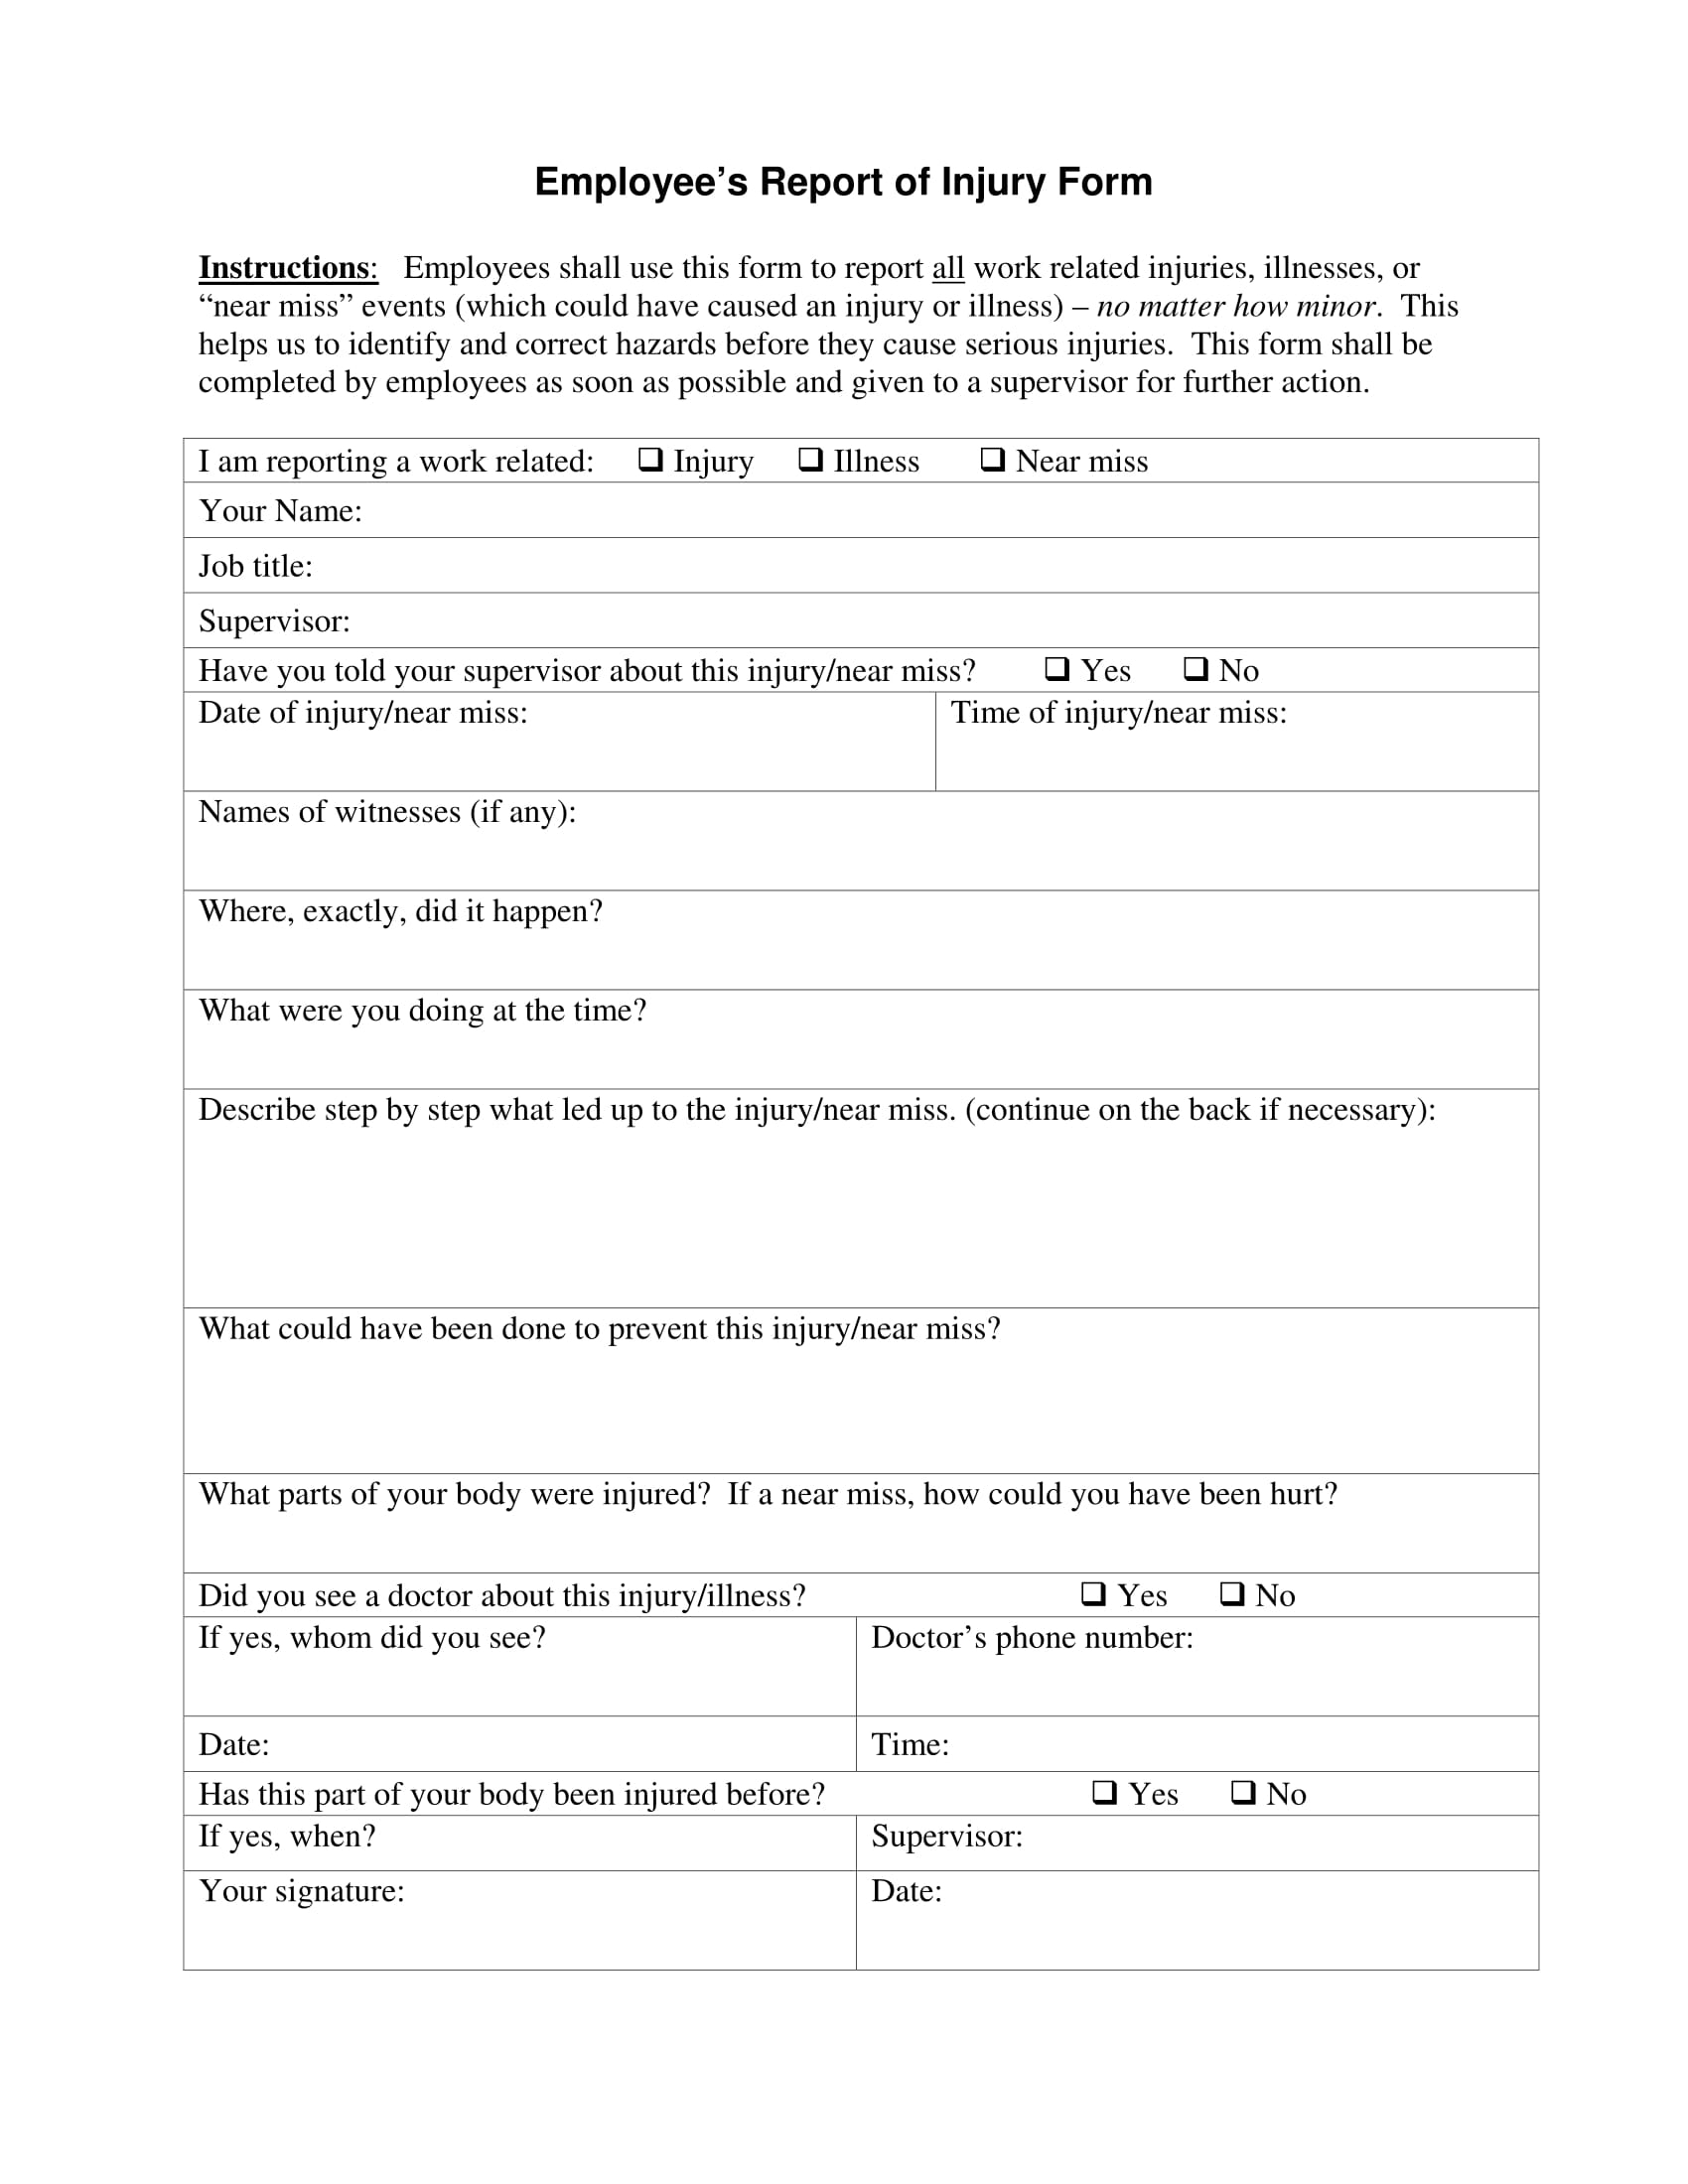 employee's report of injury form 11